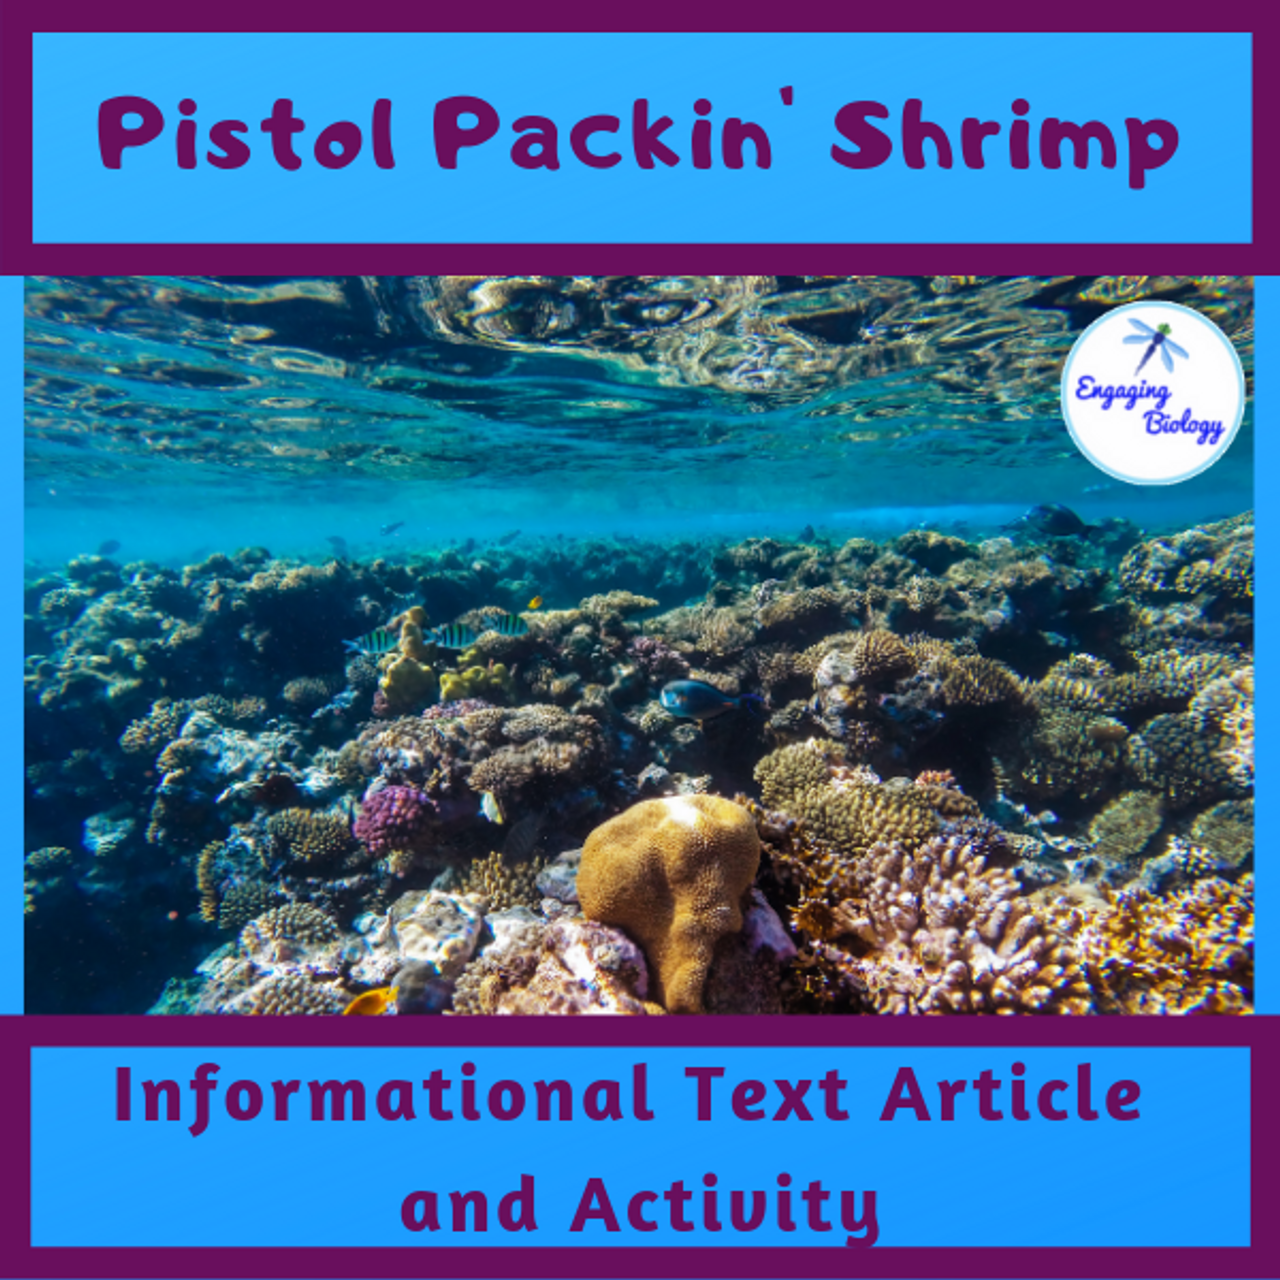 Pistol Packin' Shrimp Information Text and Activity